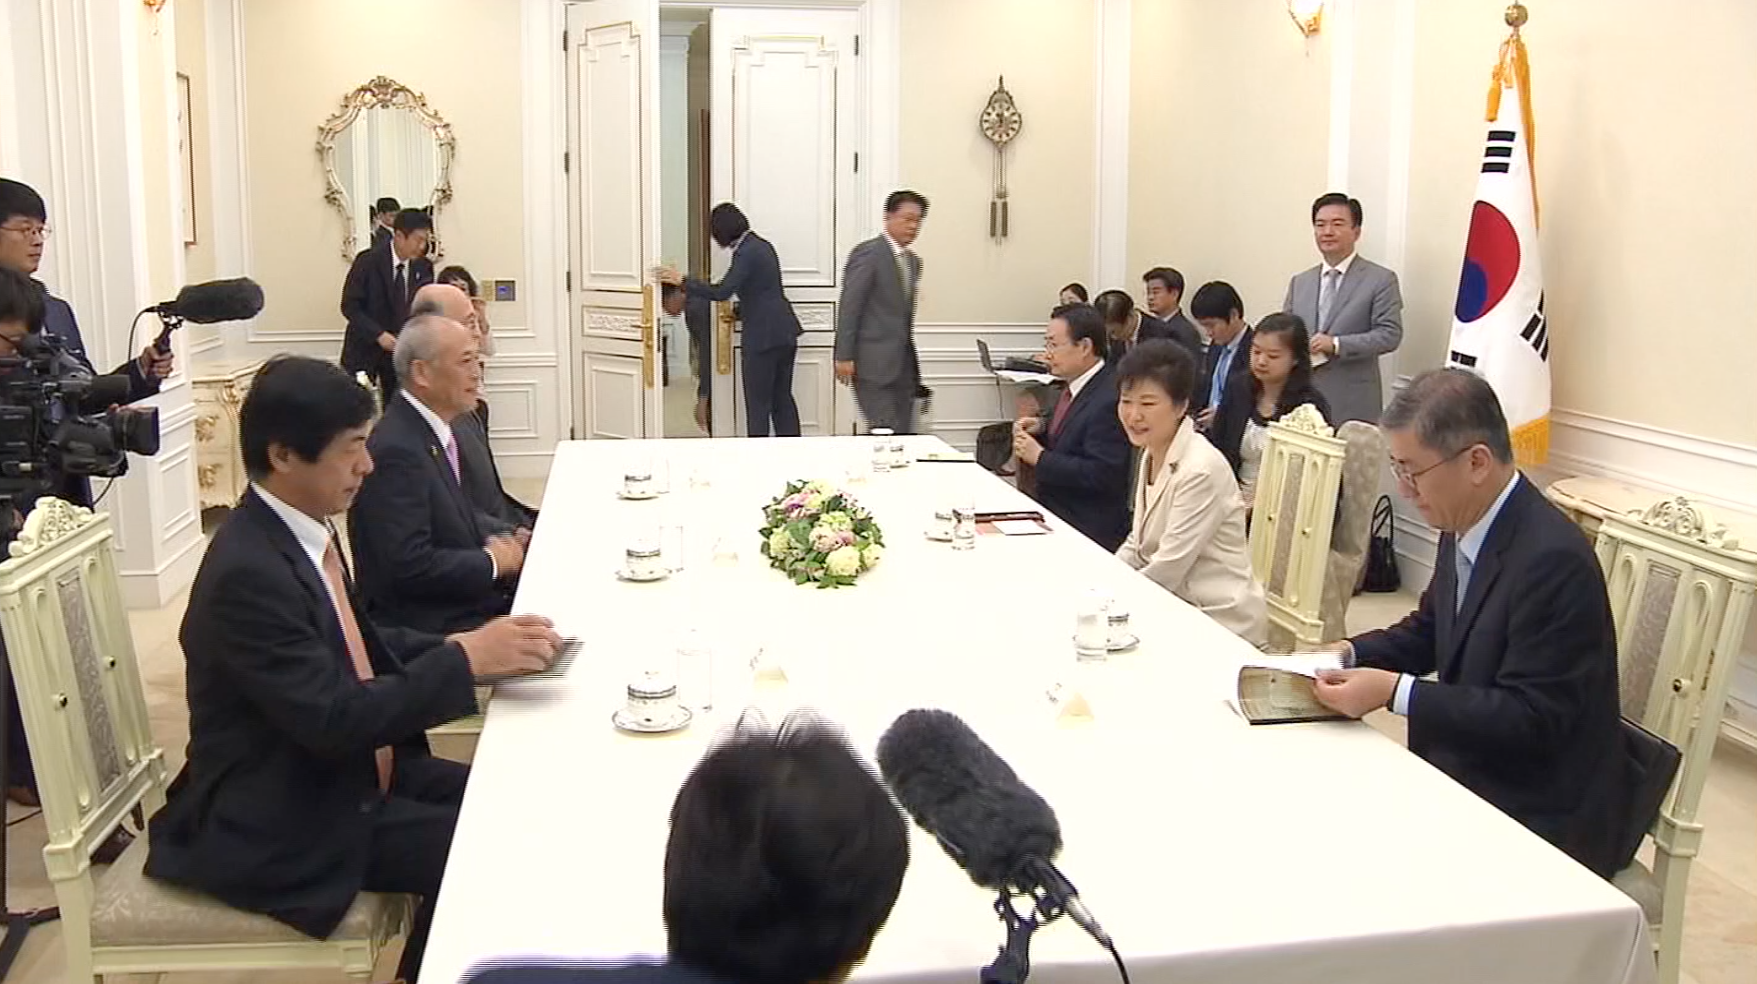 Tokyo governor meets with South Korean president